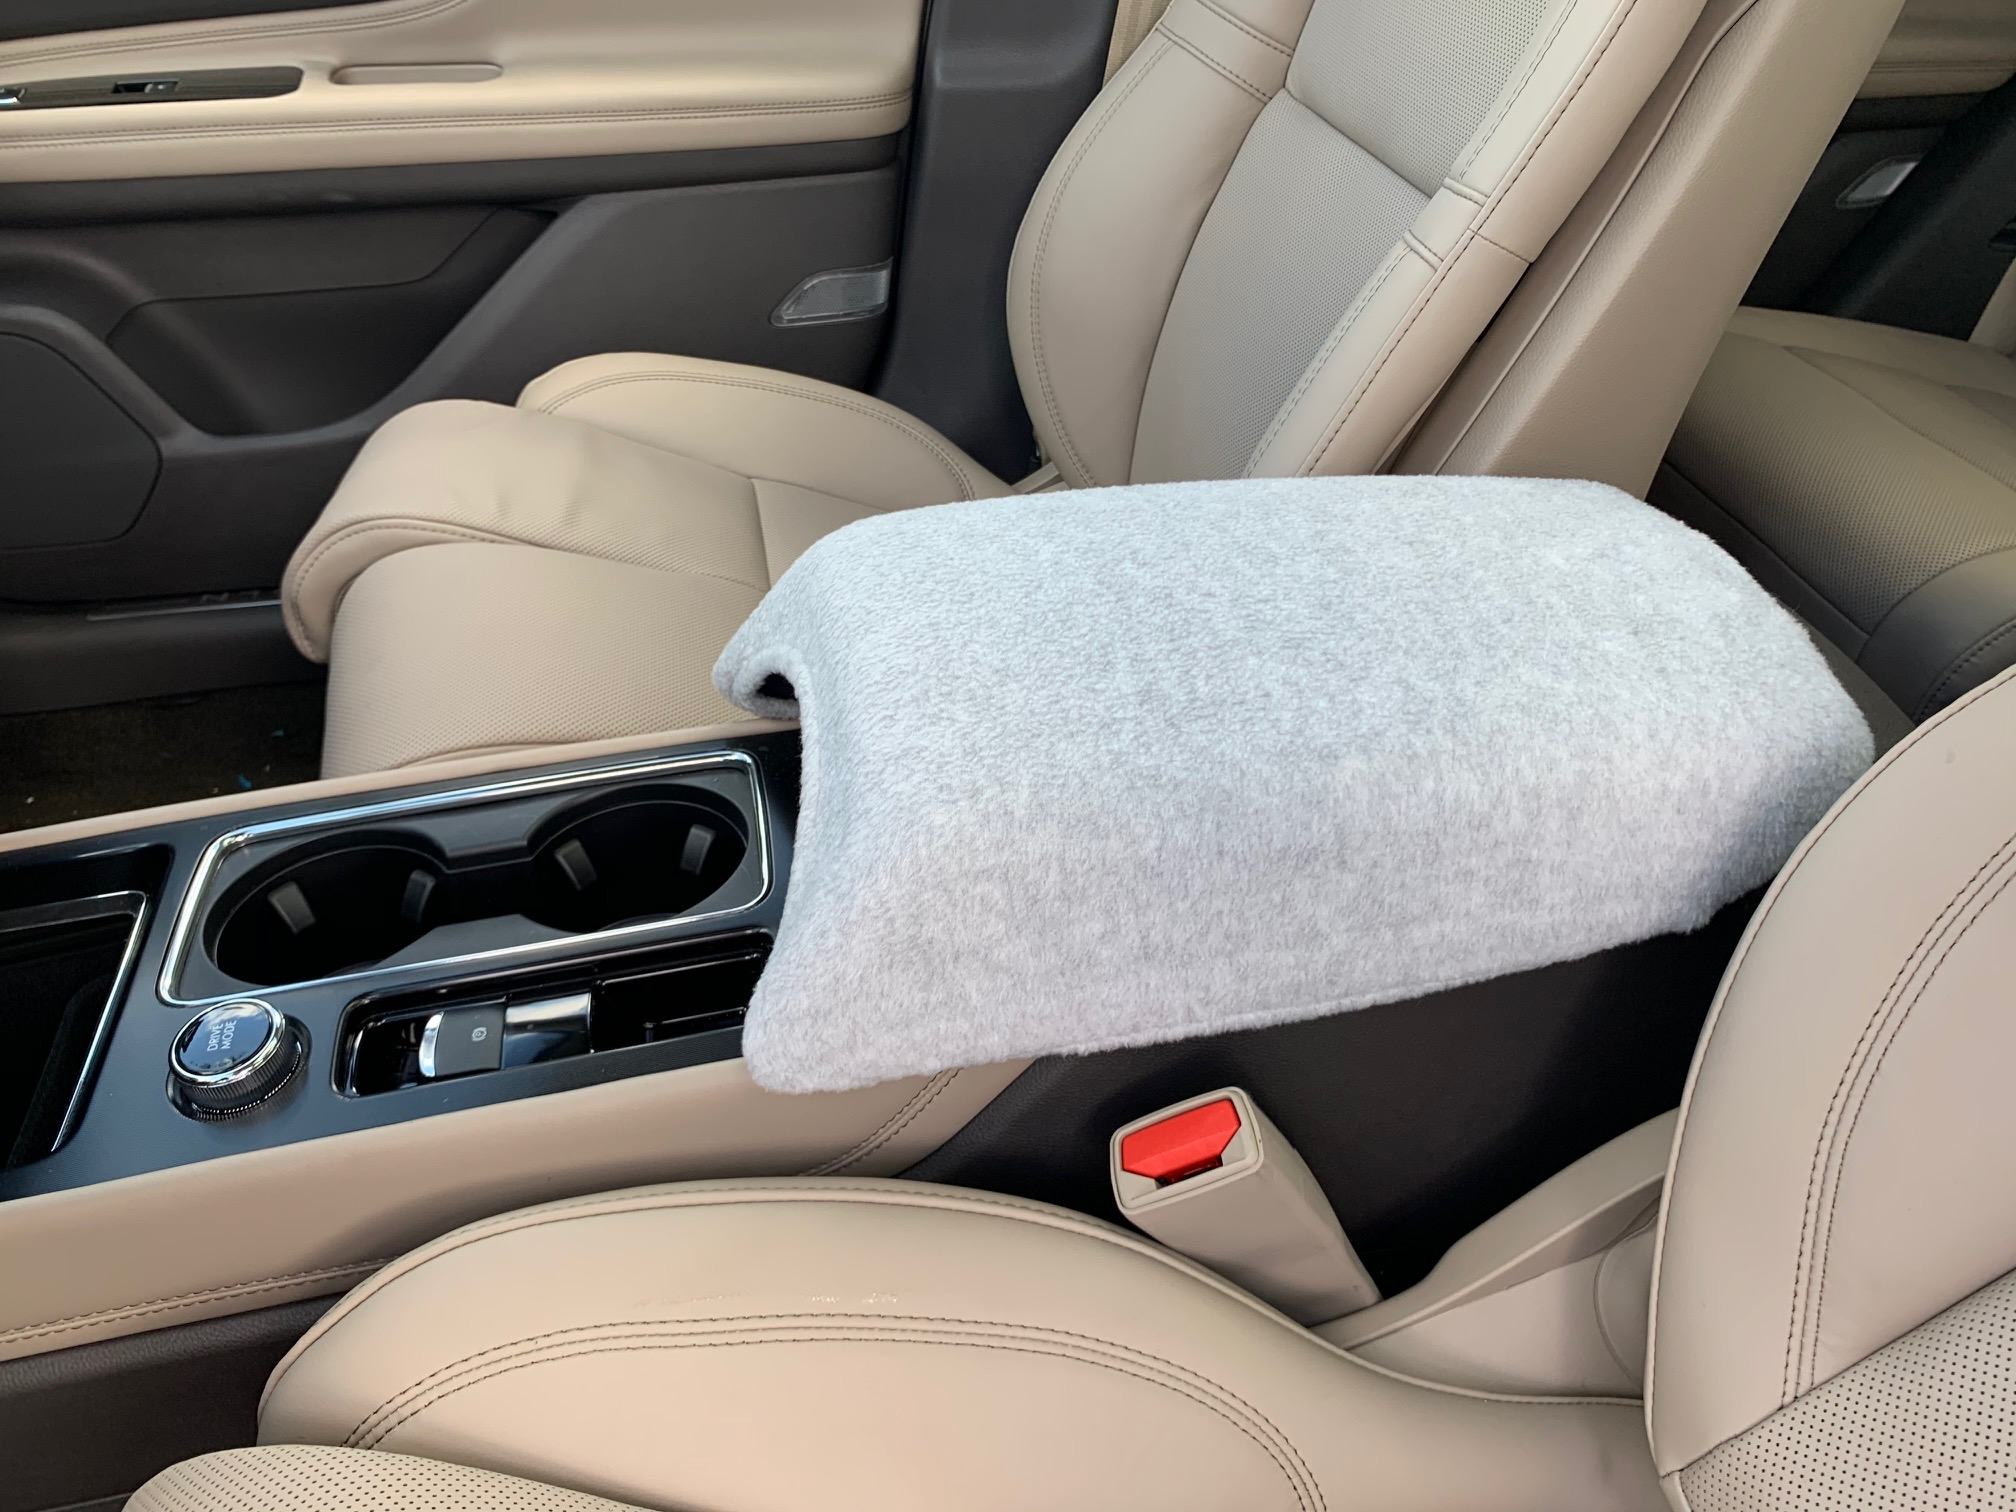 Buy Fleece Center Console Armrest Cover Fits the Lincoln Corsair 2020-2021